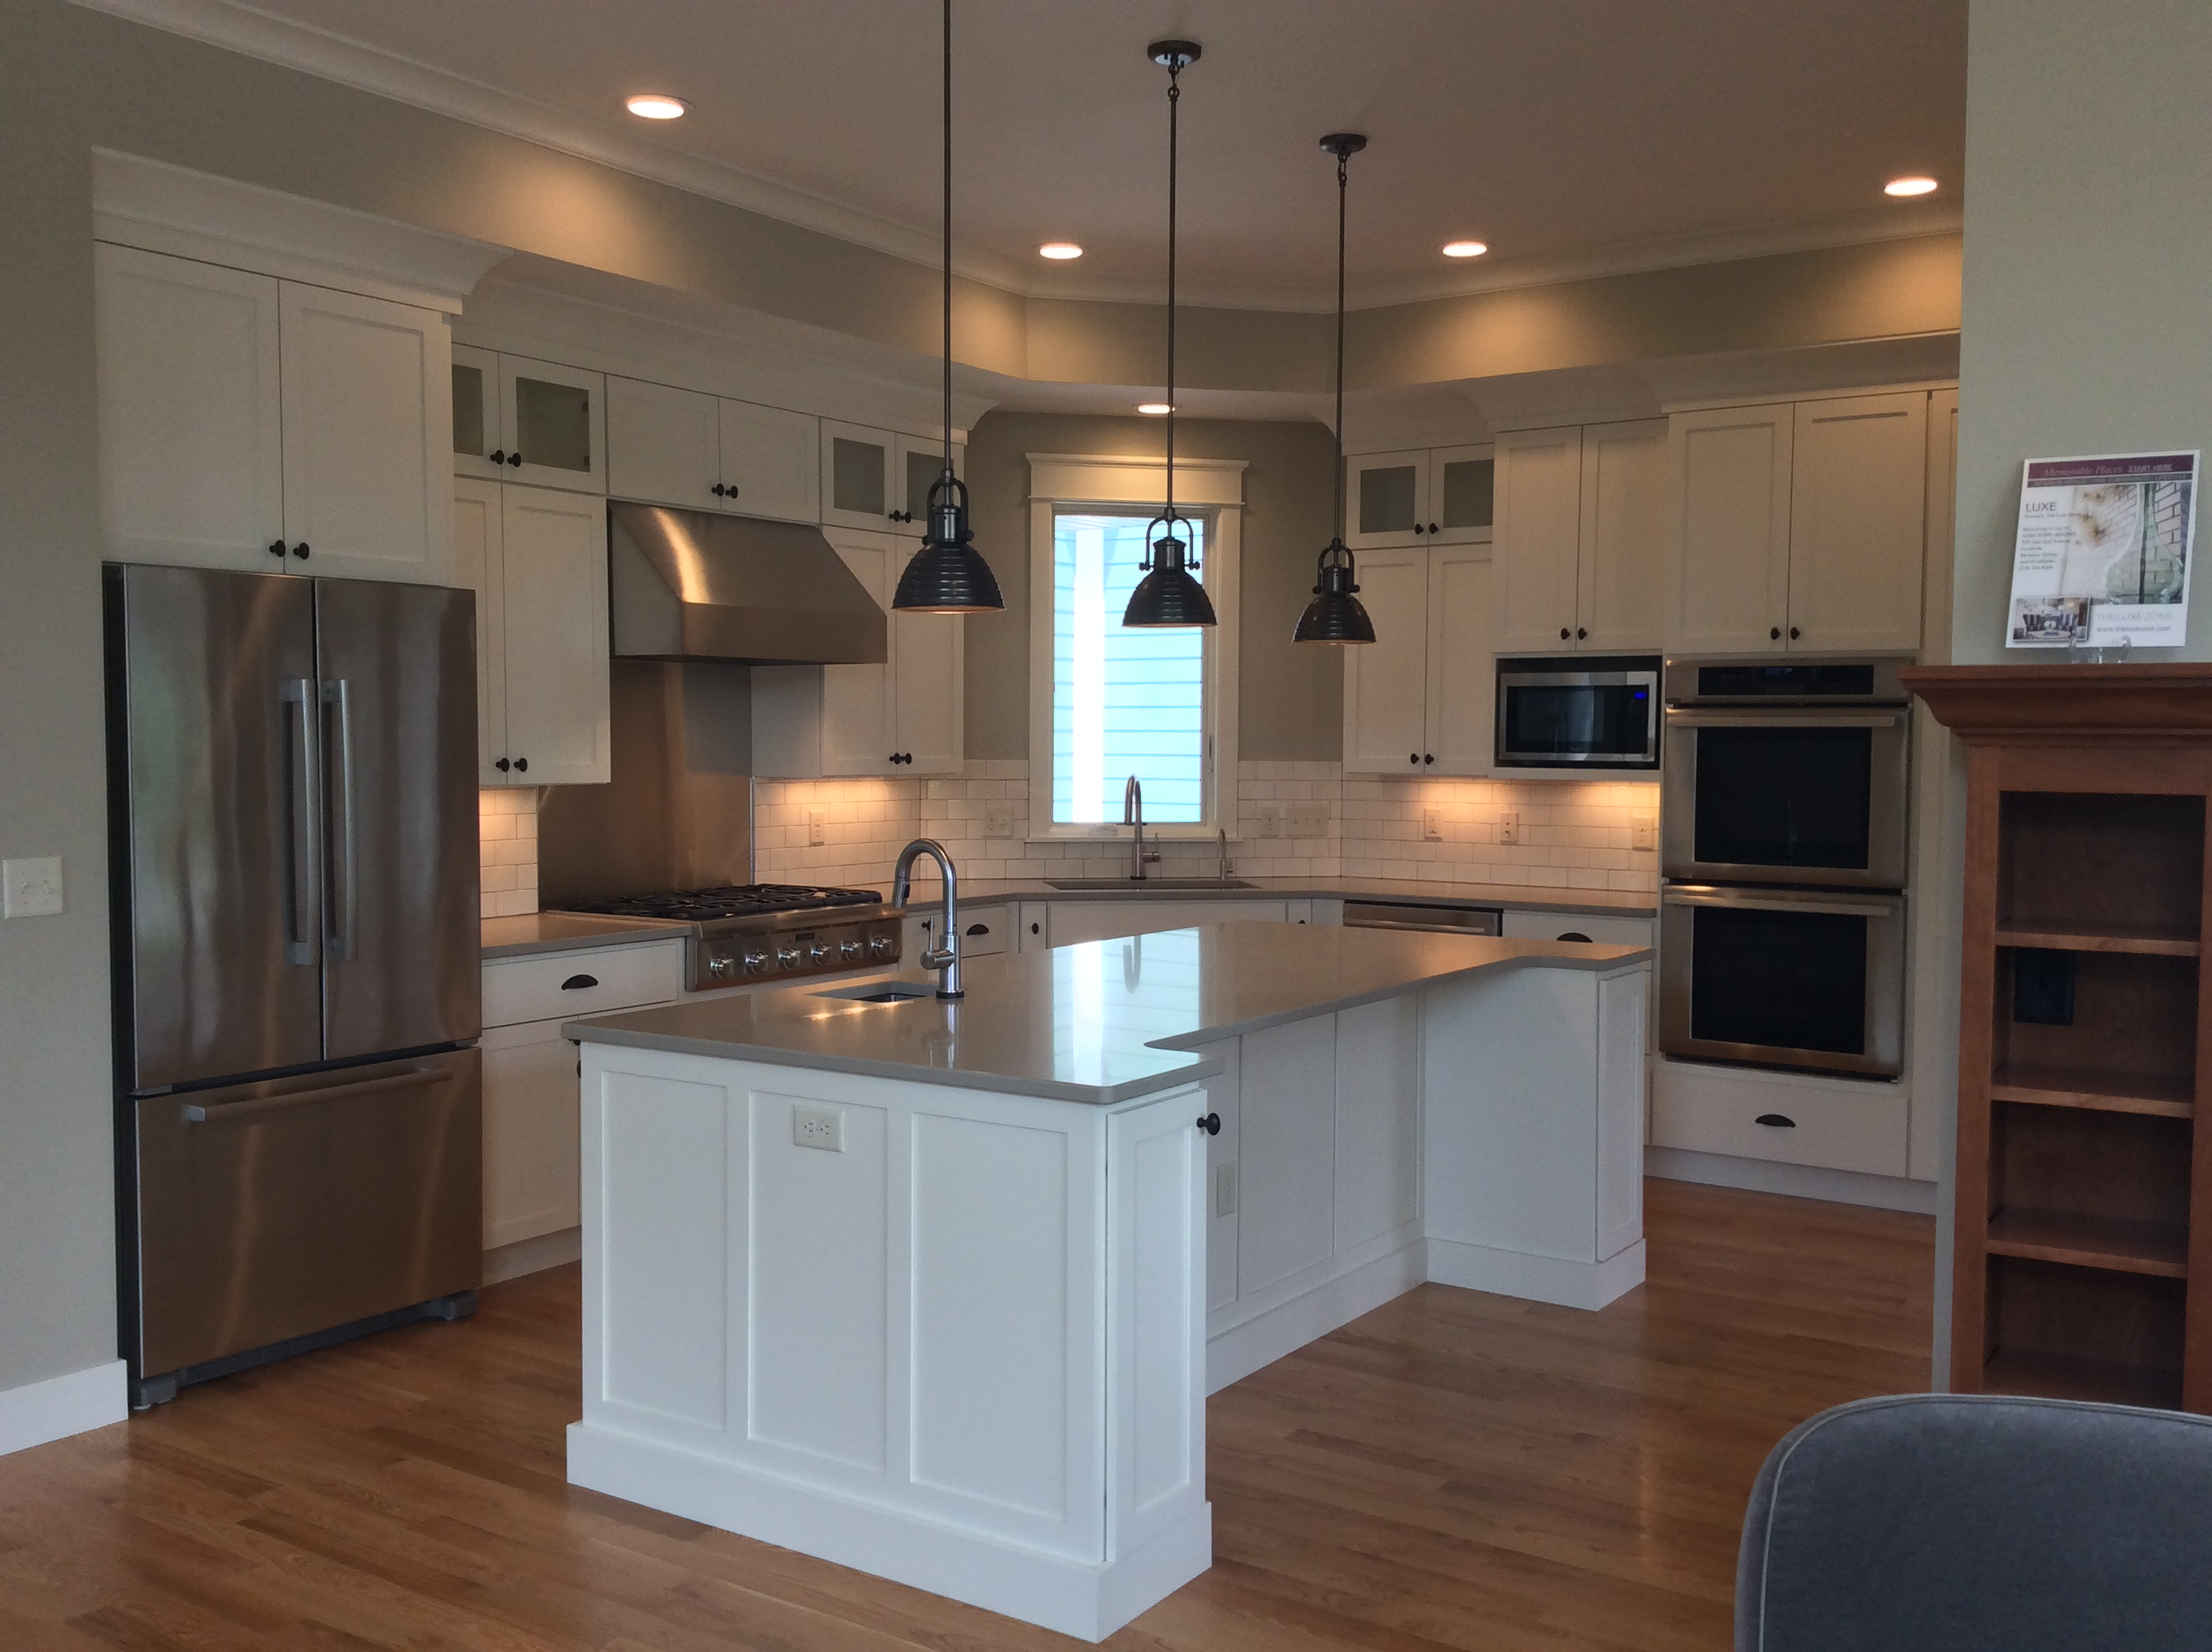 Total cost to remocel kitchen 2015 genuine home design Kitchen design brookfield ct